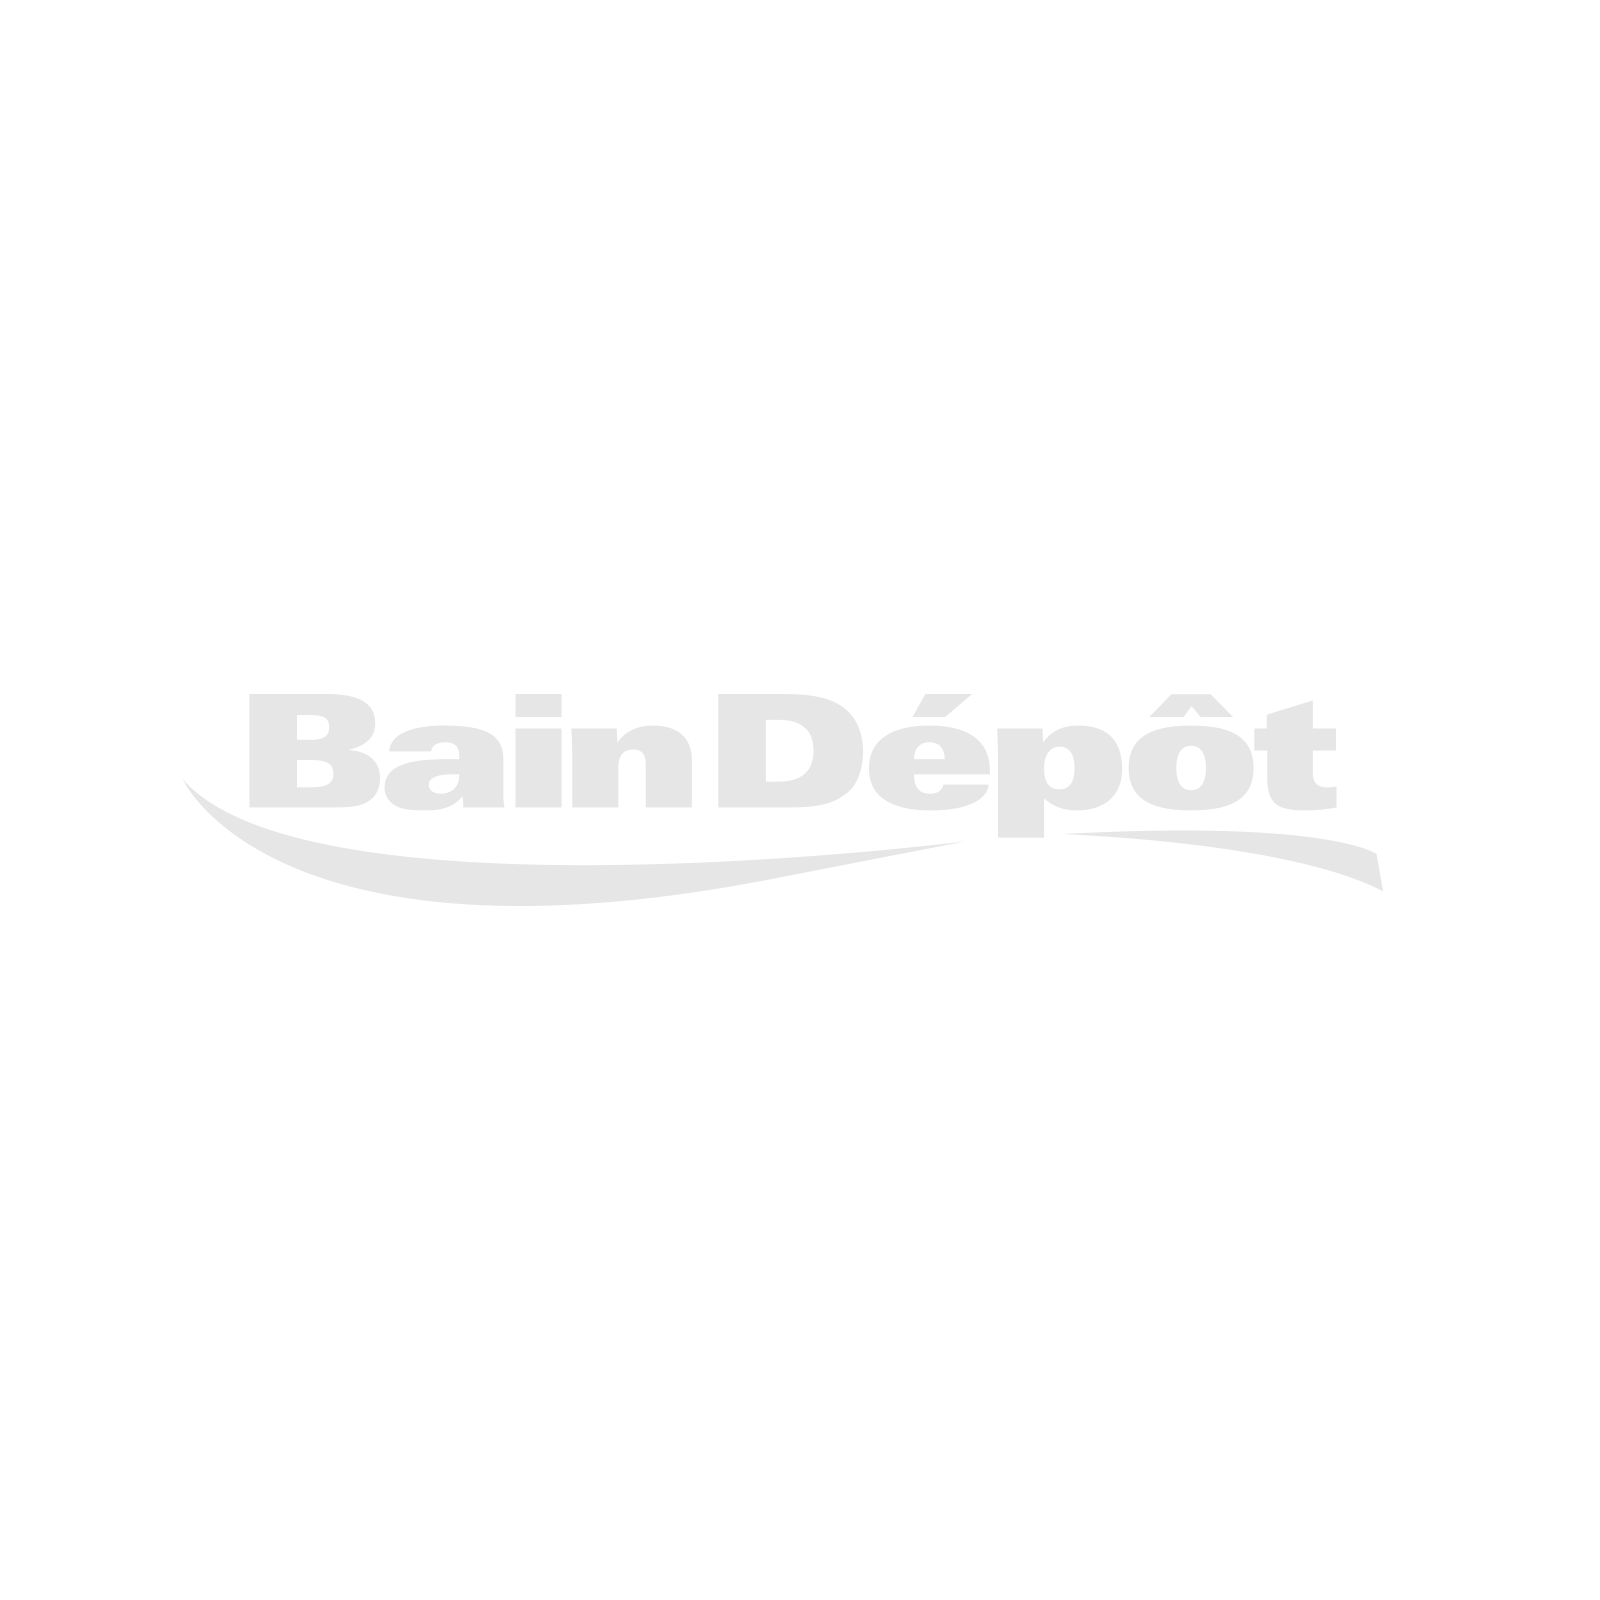 WARMUP - FOIL for carpet, laminate and wood floors covering 60 square feet